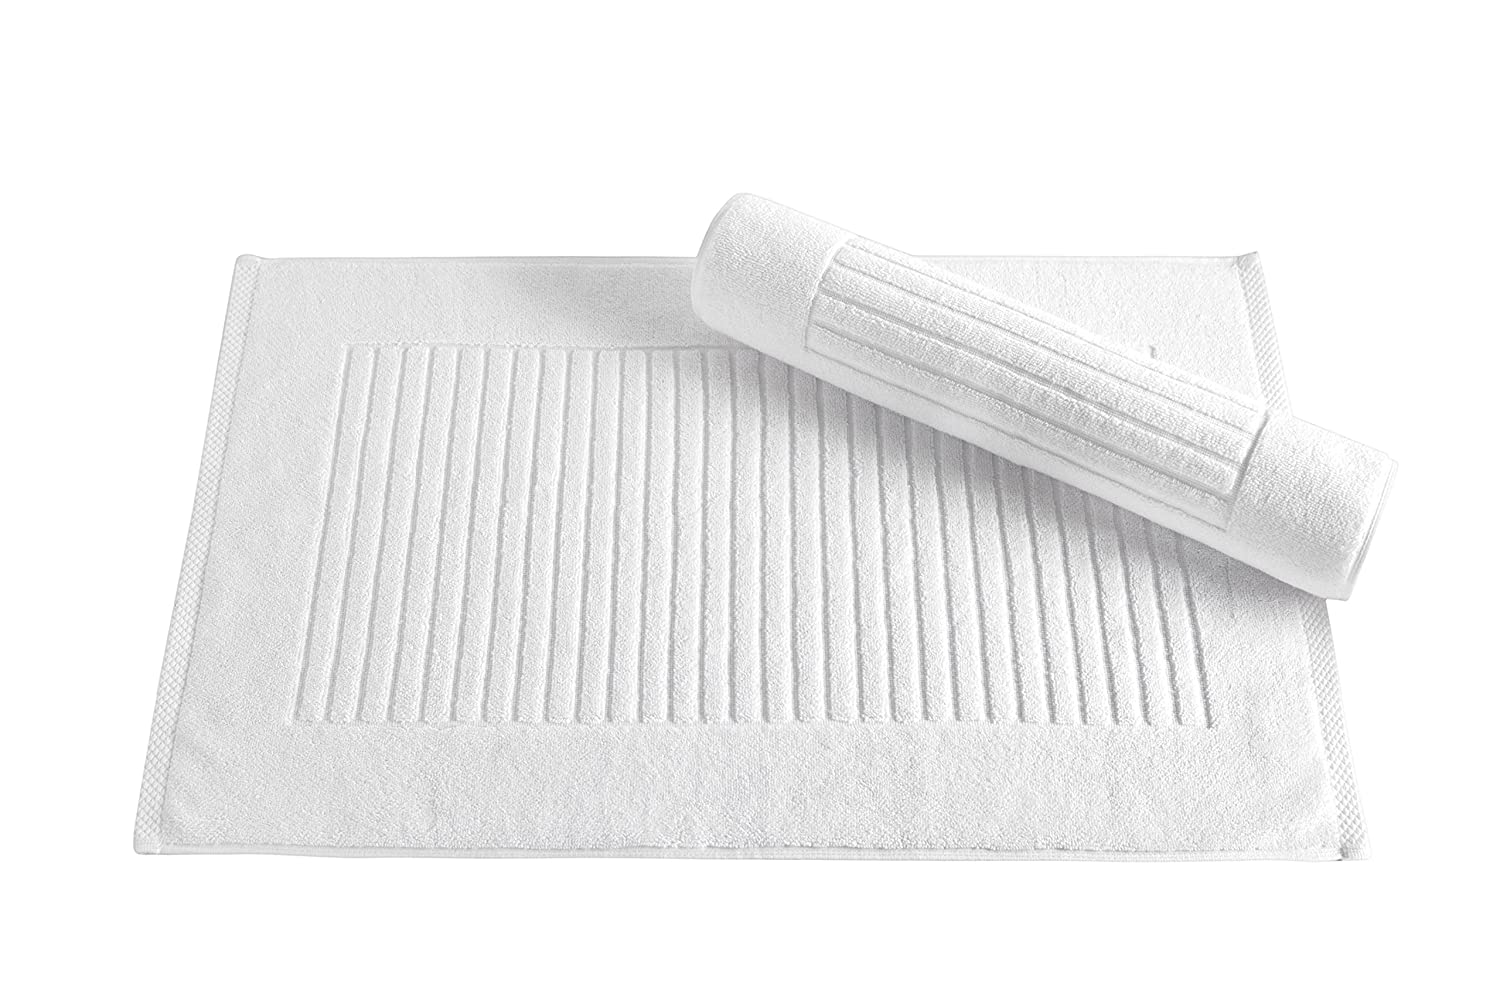 Classic Turkish Towels 6 Piece Luxury Washcloth Towel Set - 13 x 13 Inch Soft and Thick Large Bath Towel Washcloths Made with 100% Turkish Cotton (White) Makroteks Textile 5850358